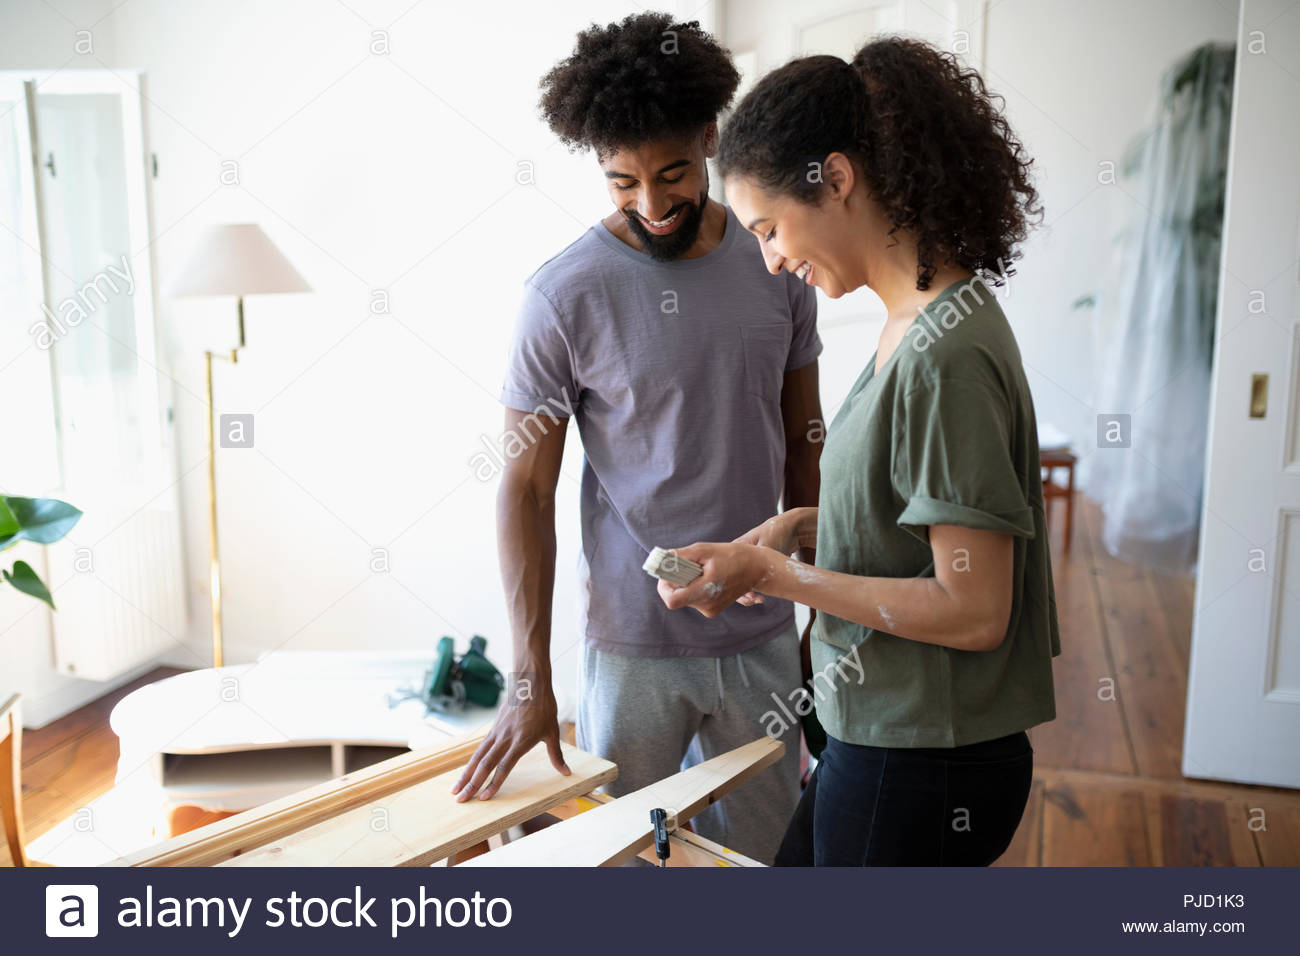 Couple doing DIY carpentry project - Stock Image